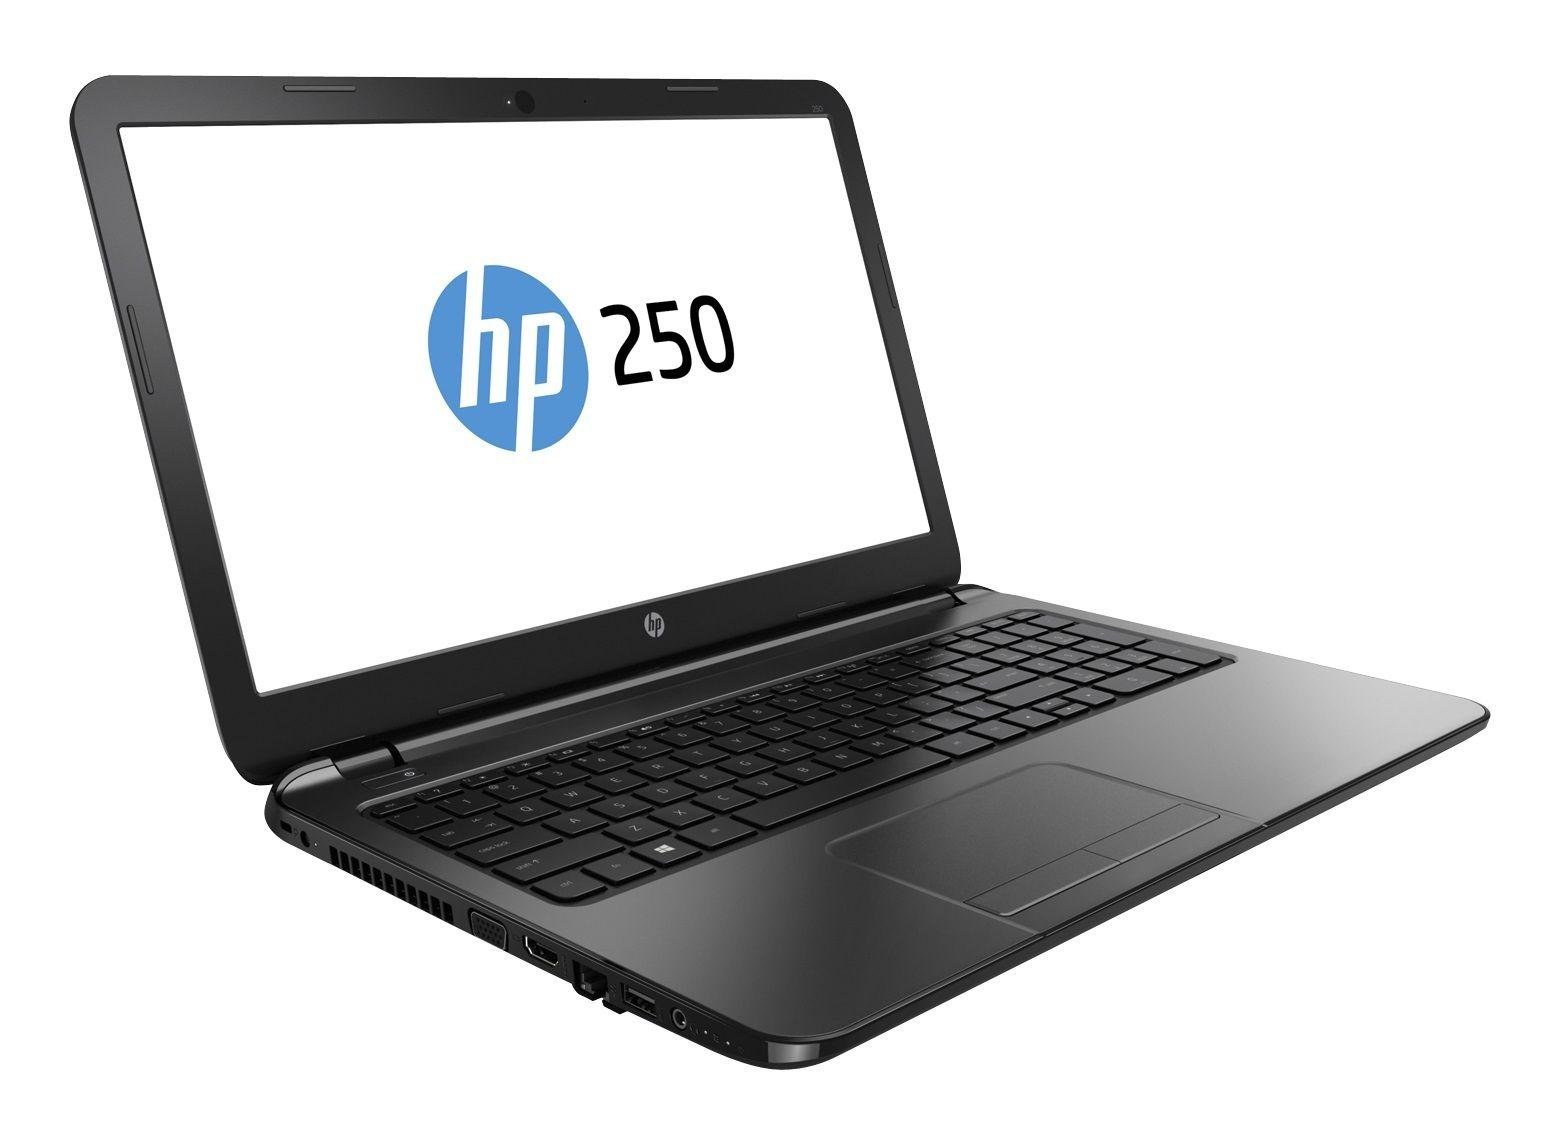 HP 250 G3 Intel 4th Gen i3 Notebook Laptops